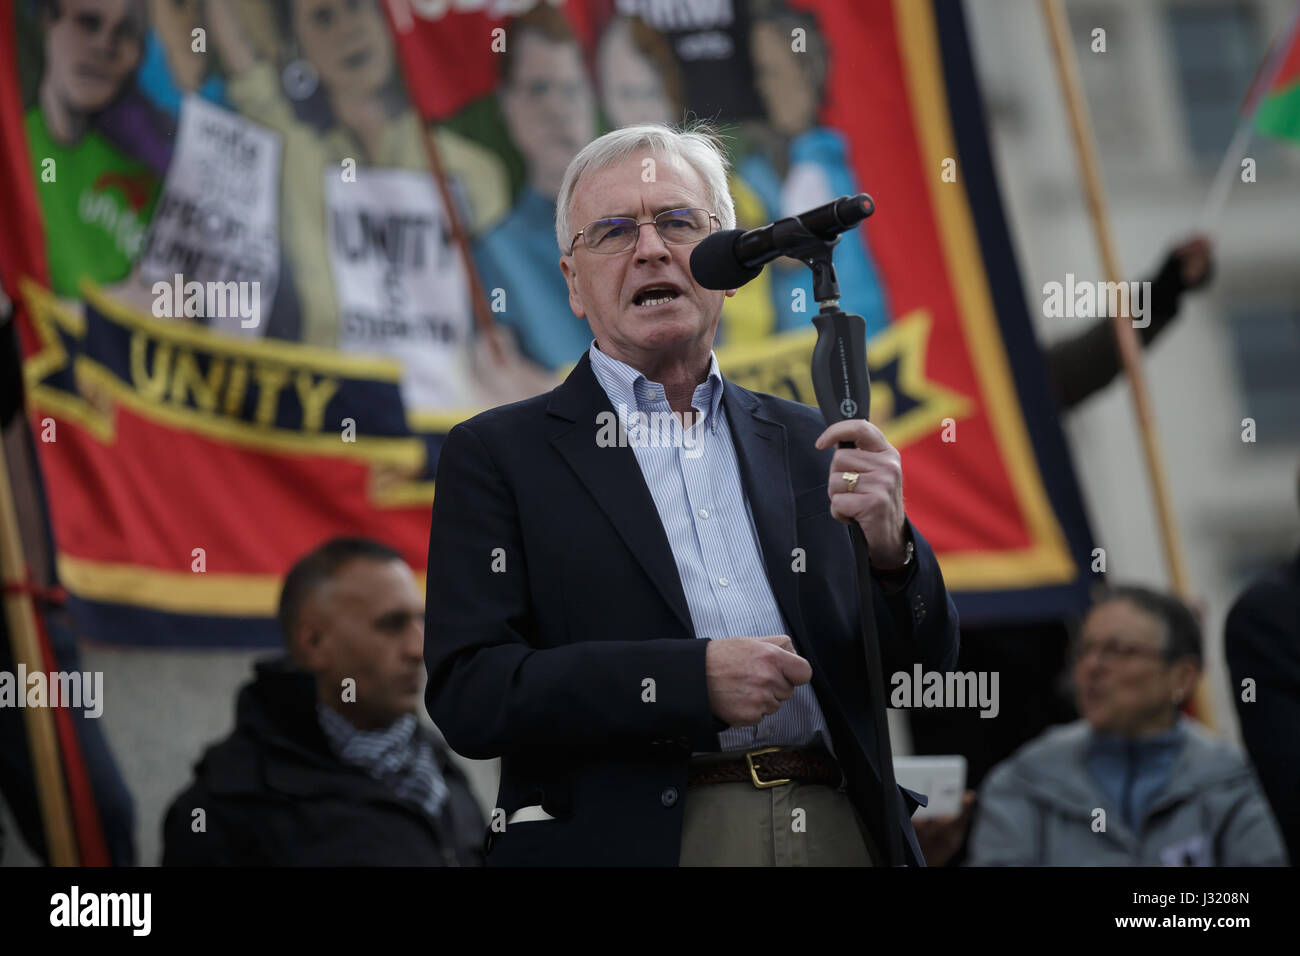 London, UK. 1st May, 2017. Britain's shadow chancellor of the exchequer John McDonnell addresses a May Day rally - Stock Image